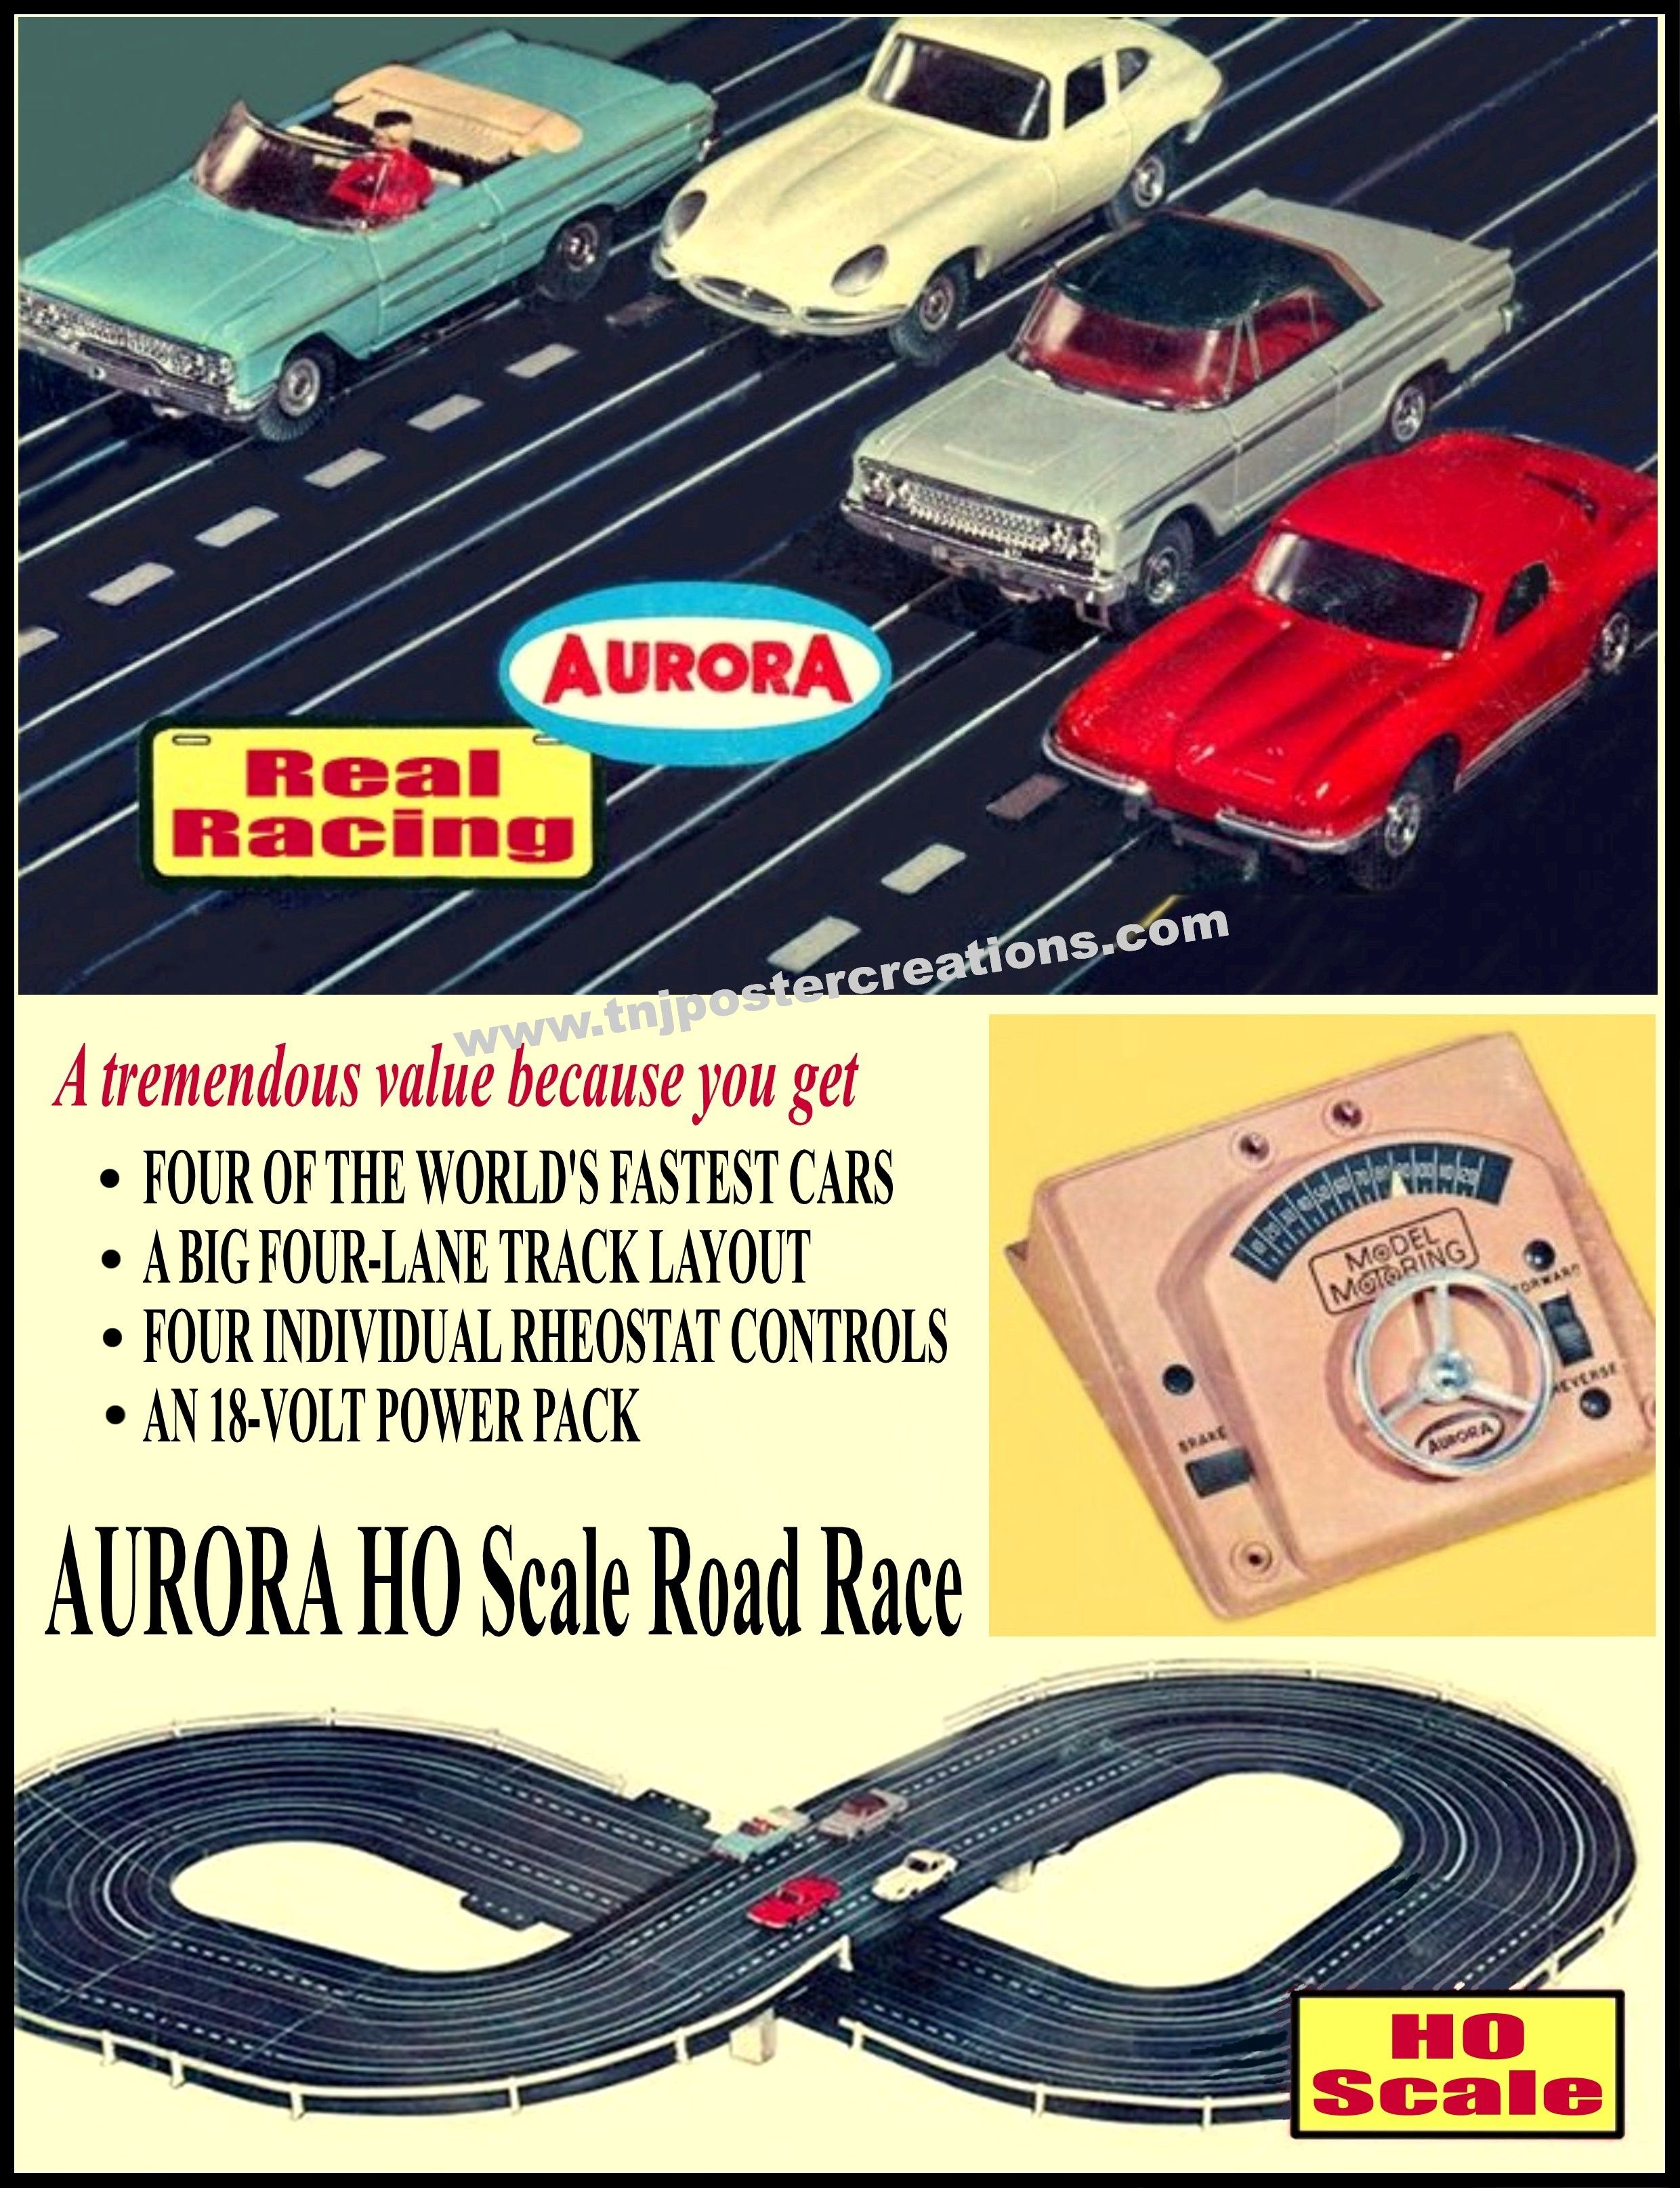 Real Racing with Aurora HO scale slot car road race sets